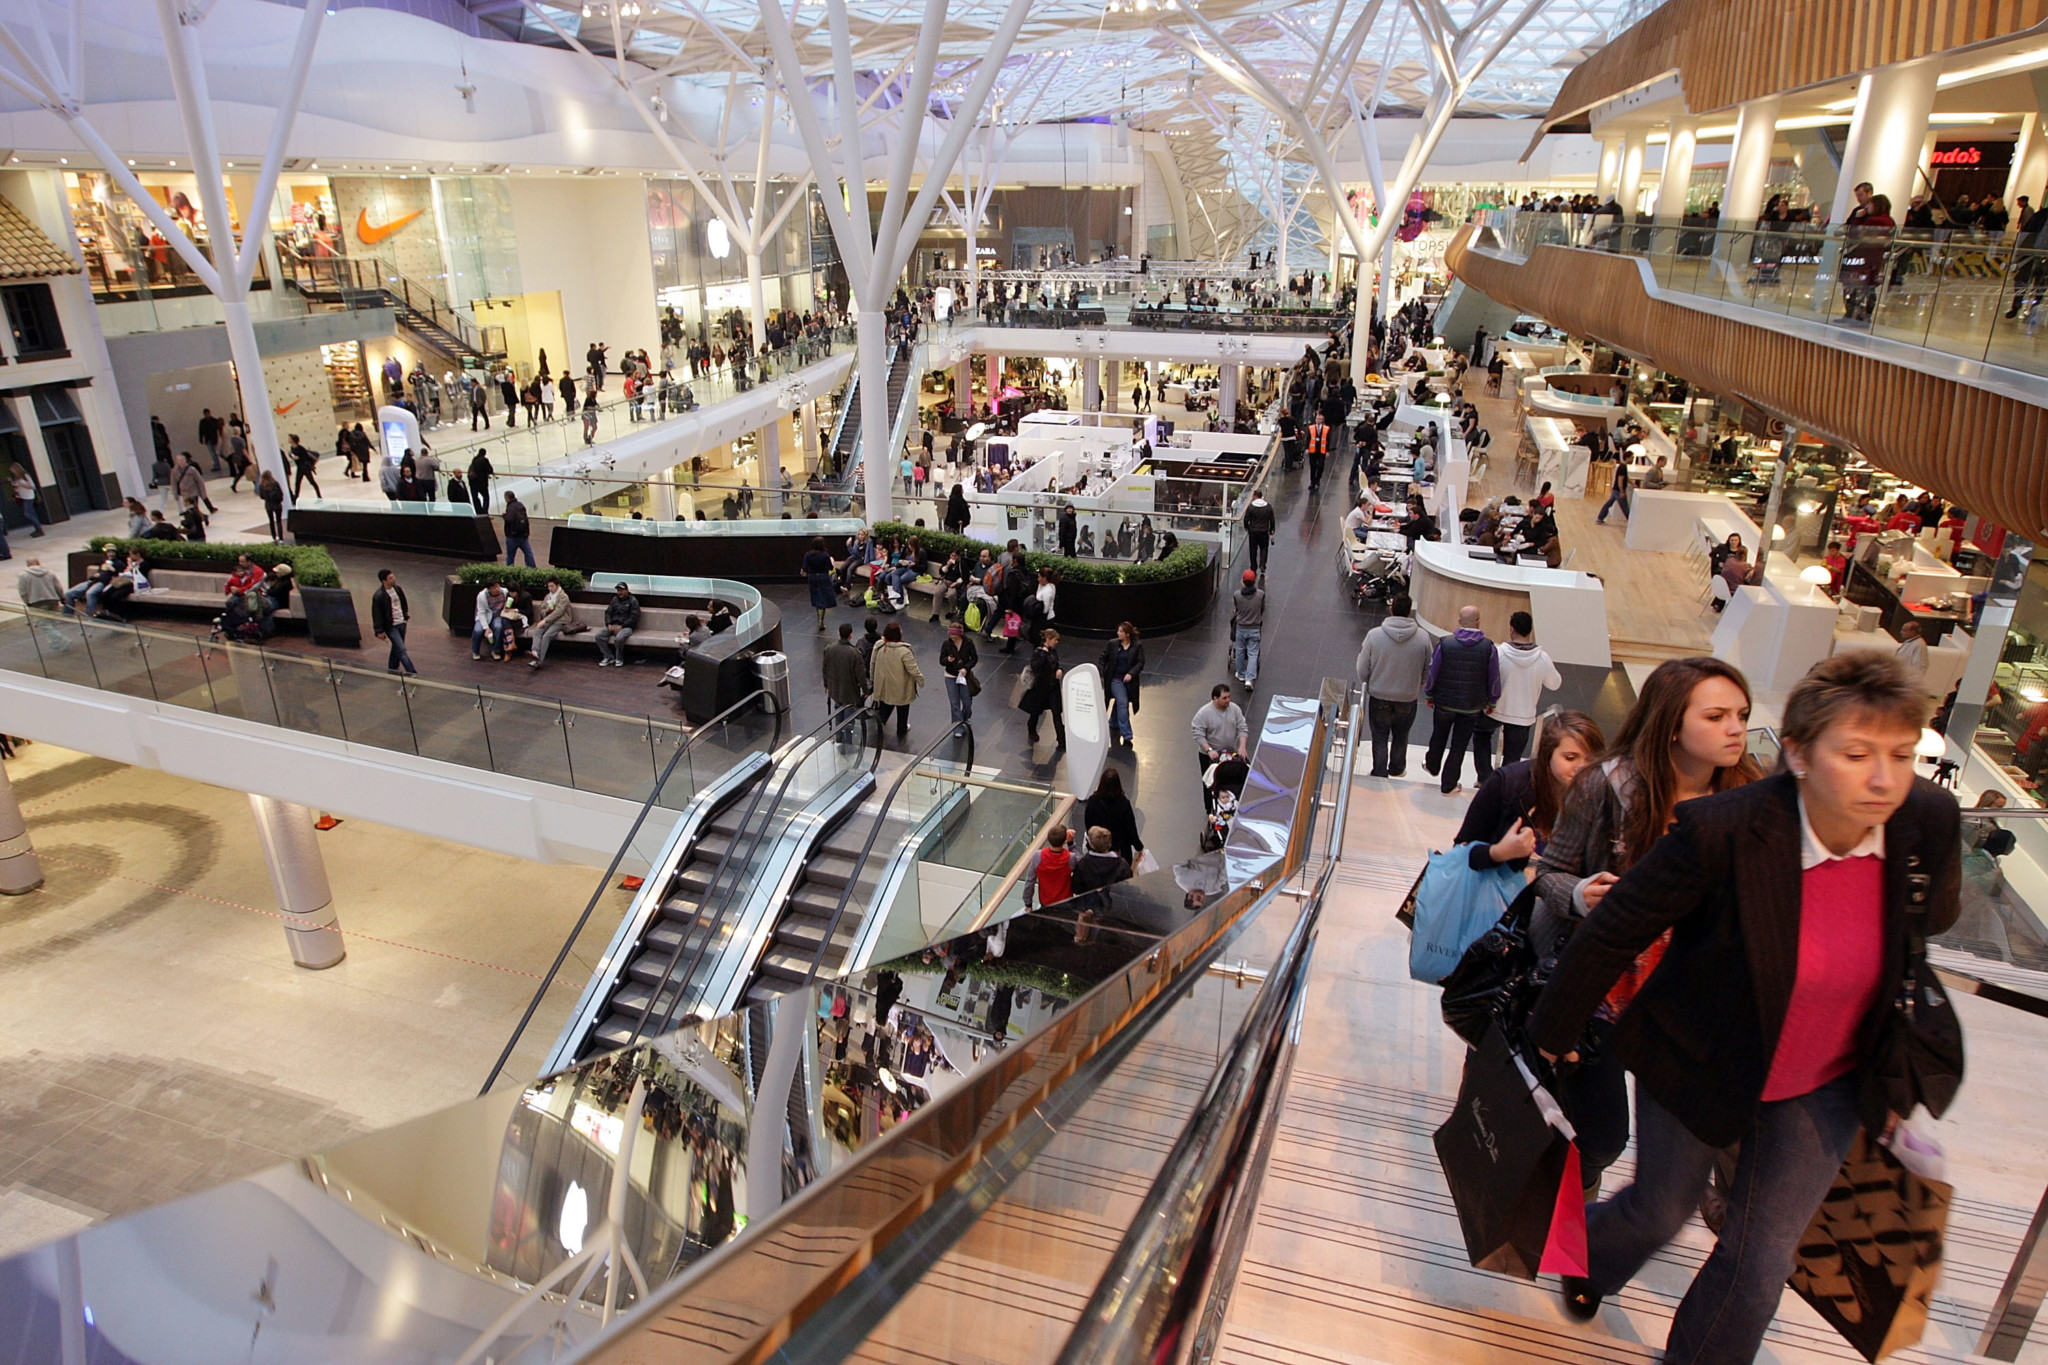 Grazia Magazine Produces Issue From New Shopping Centre